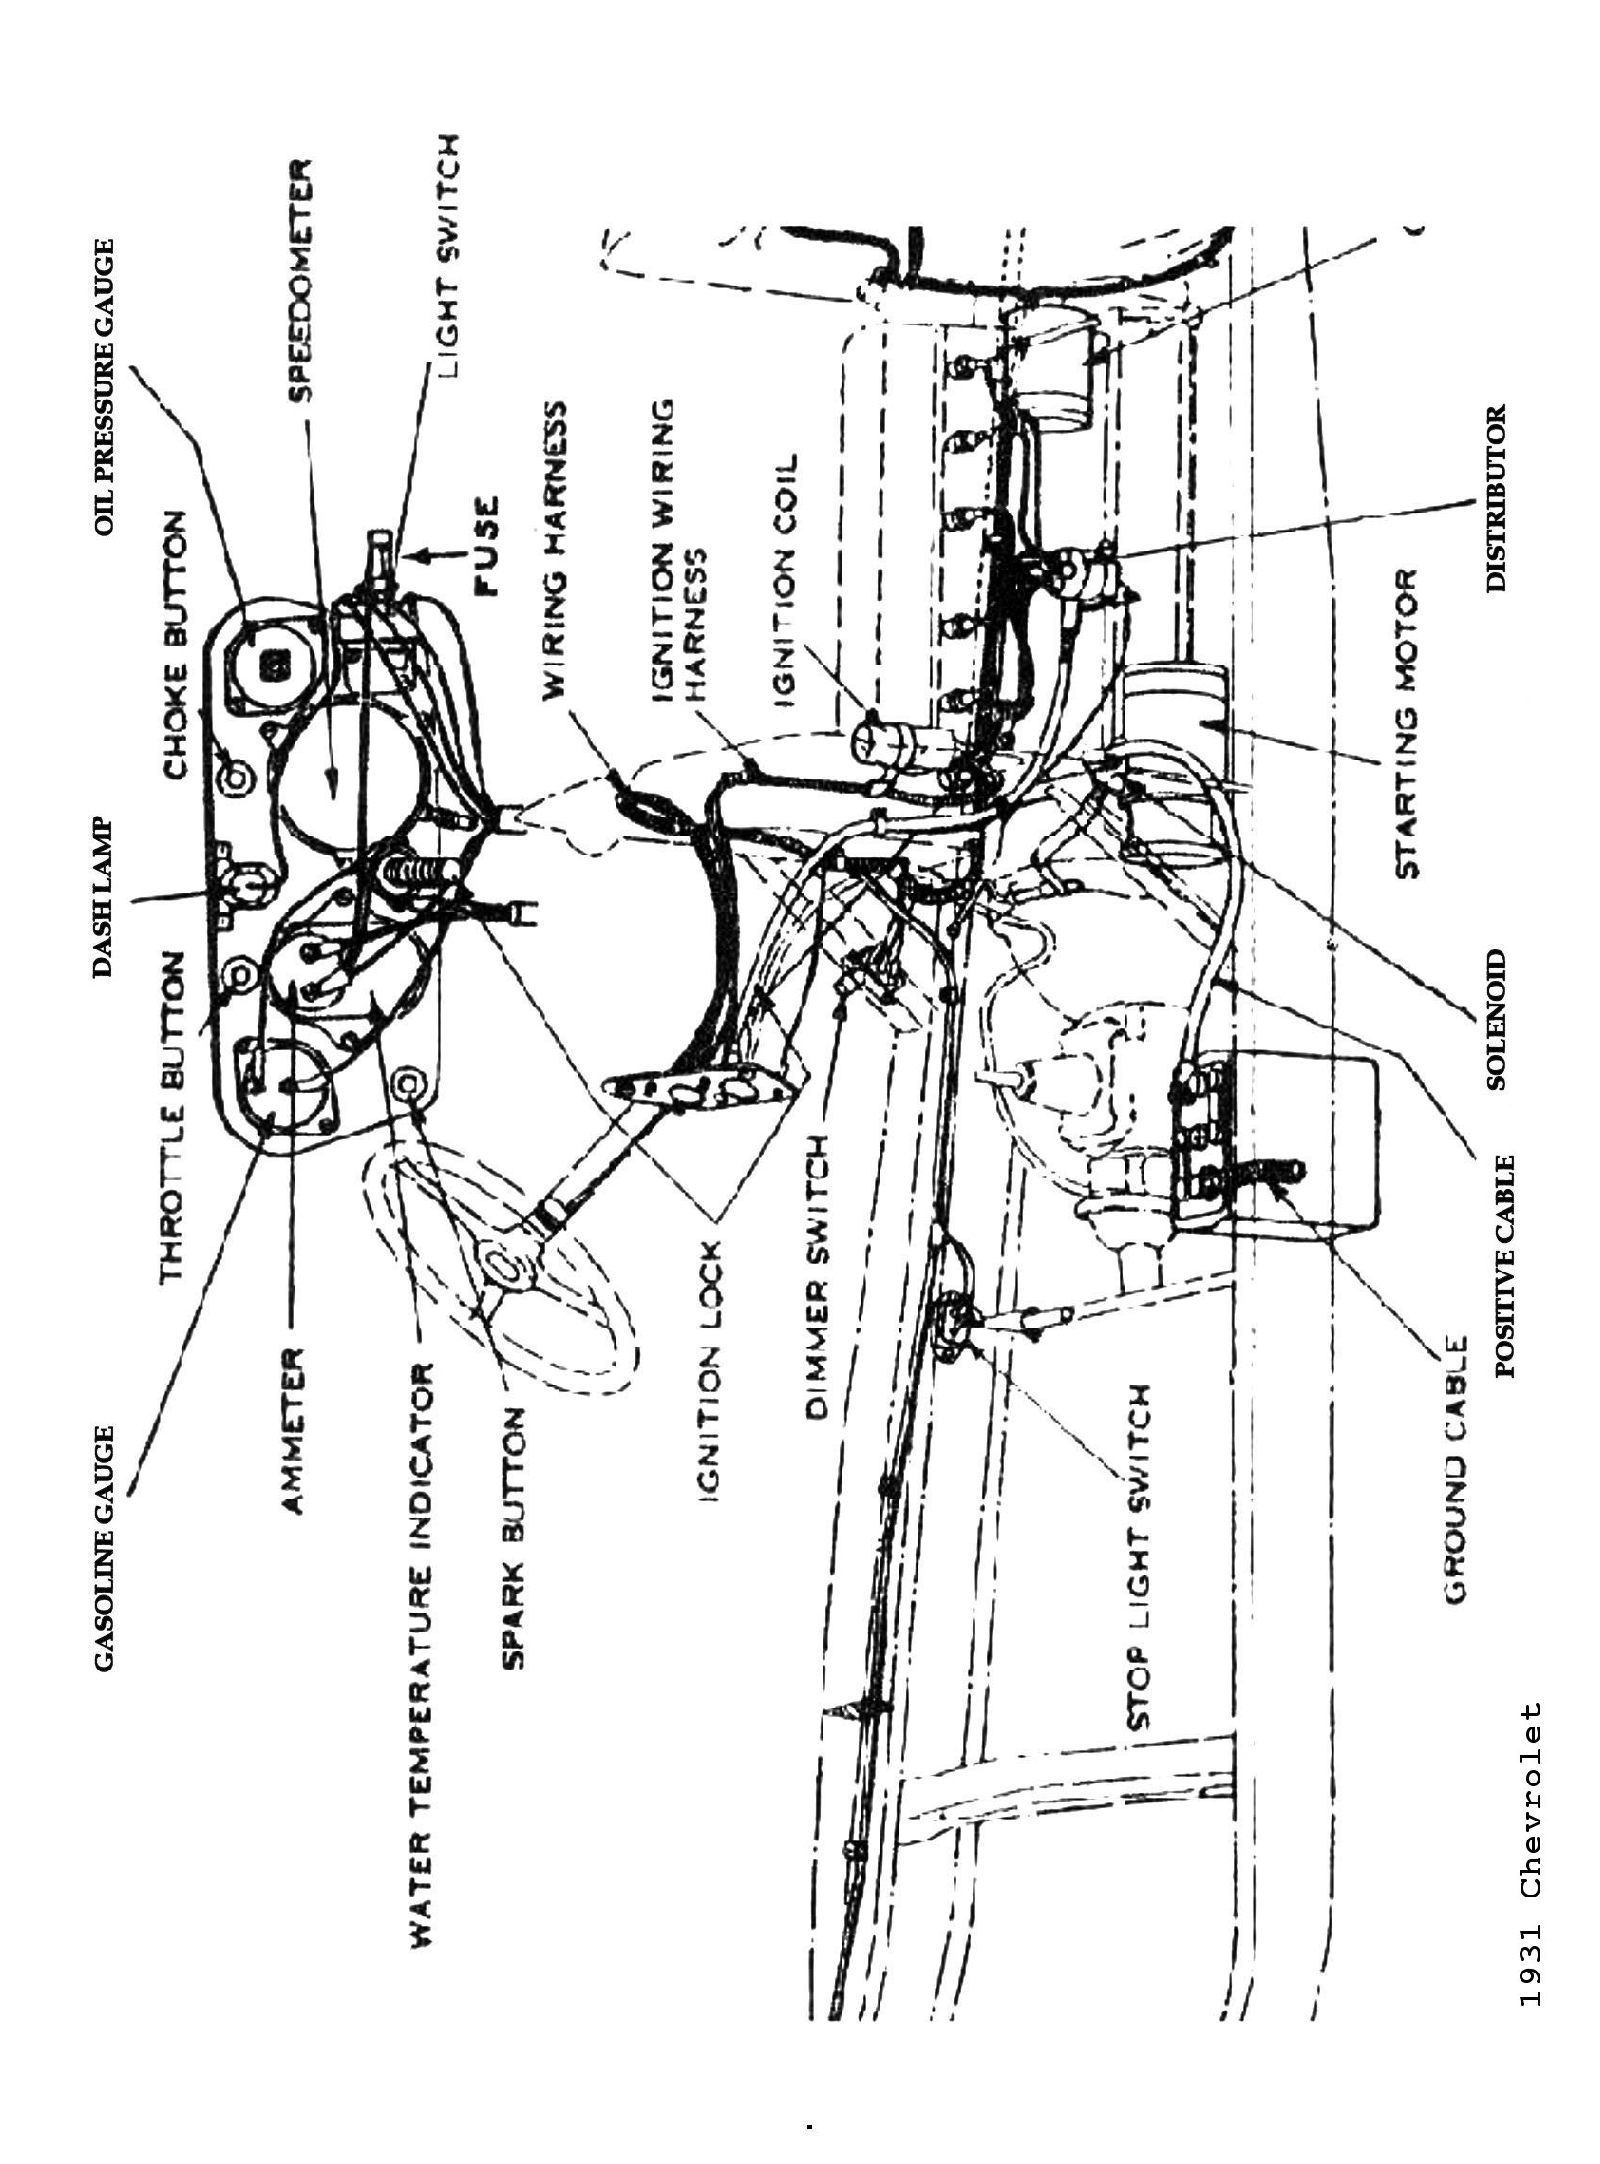 [WRG-4274] 1931 Ford Wiring Diagram Free